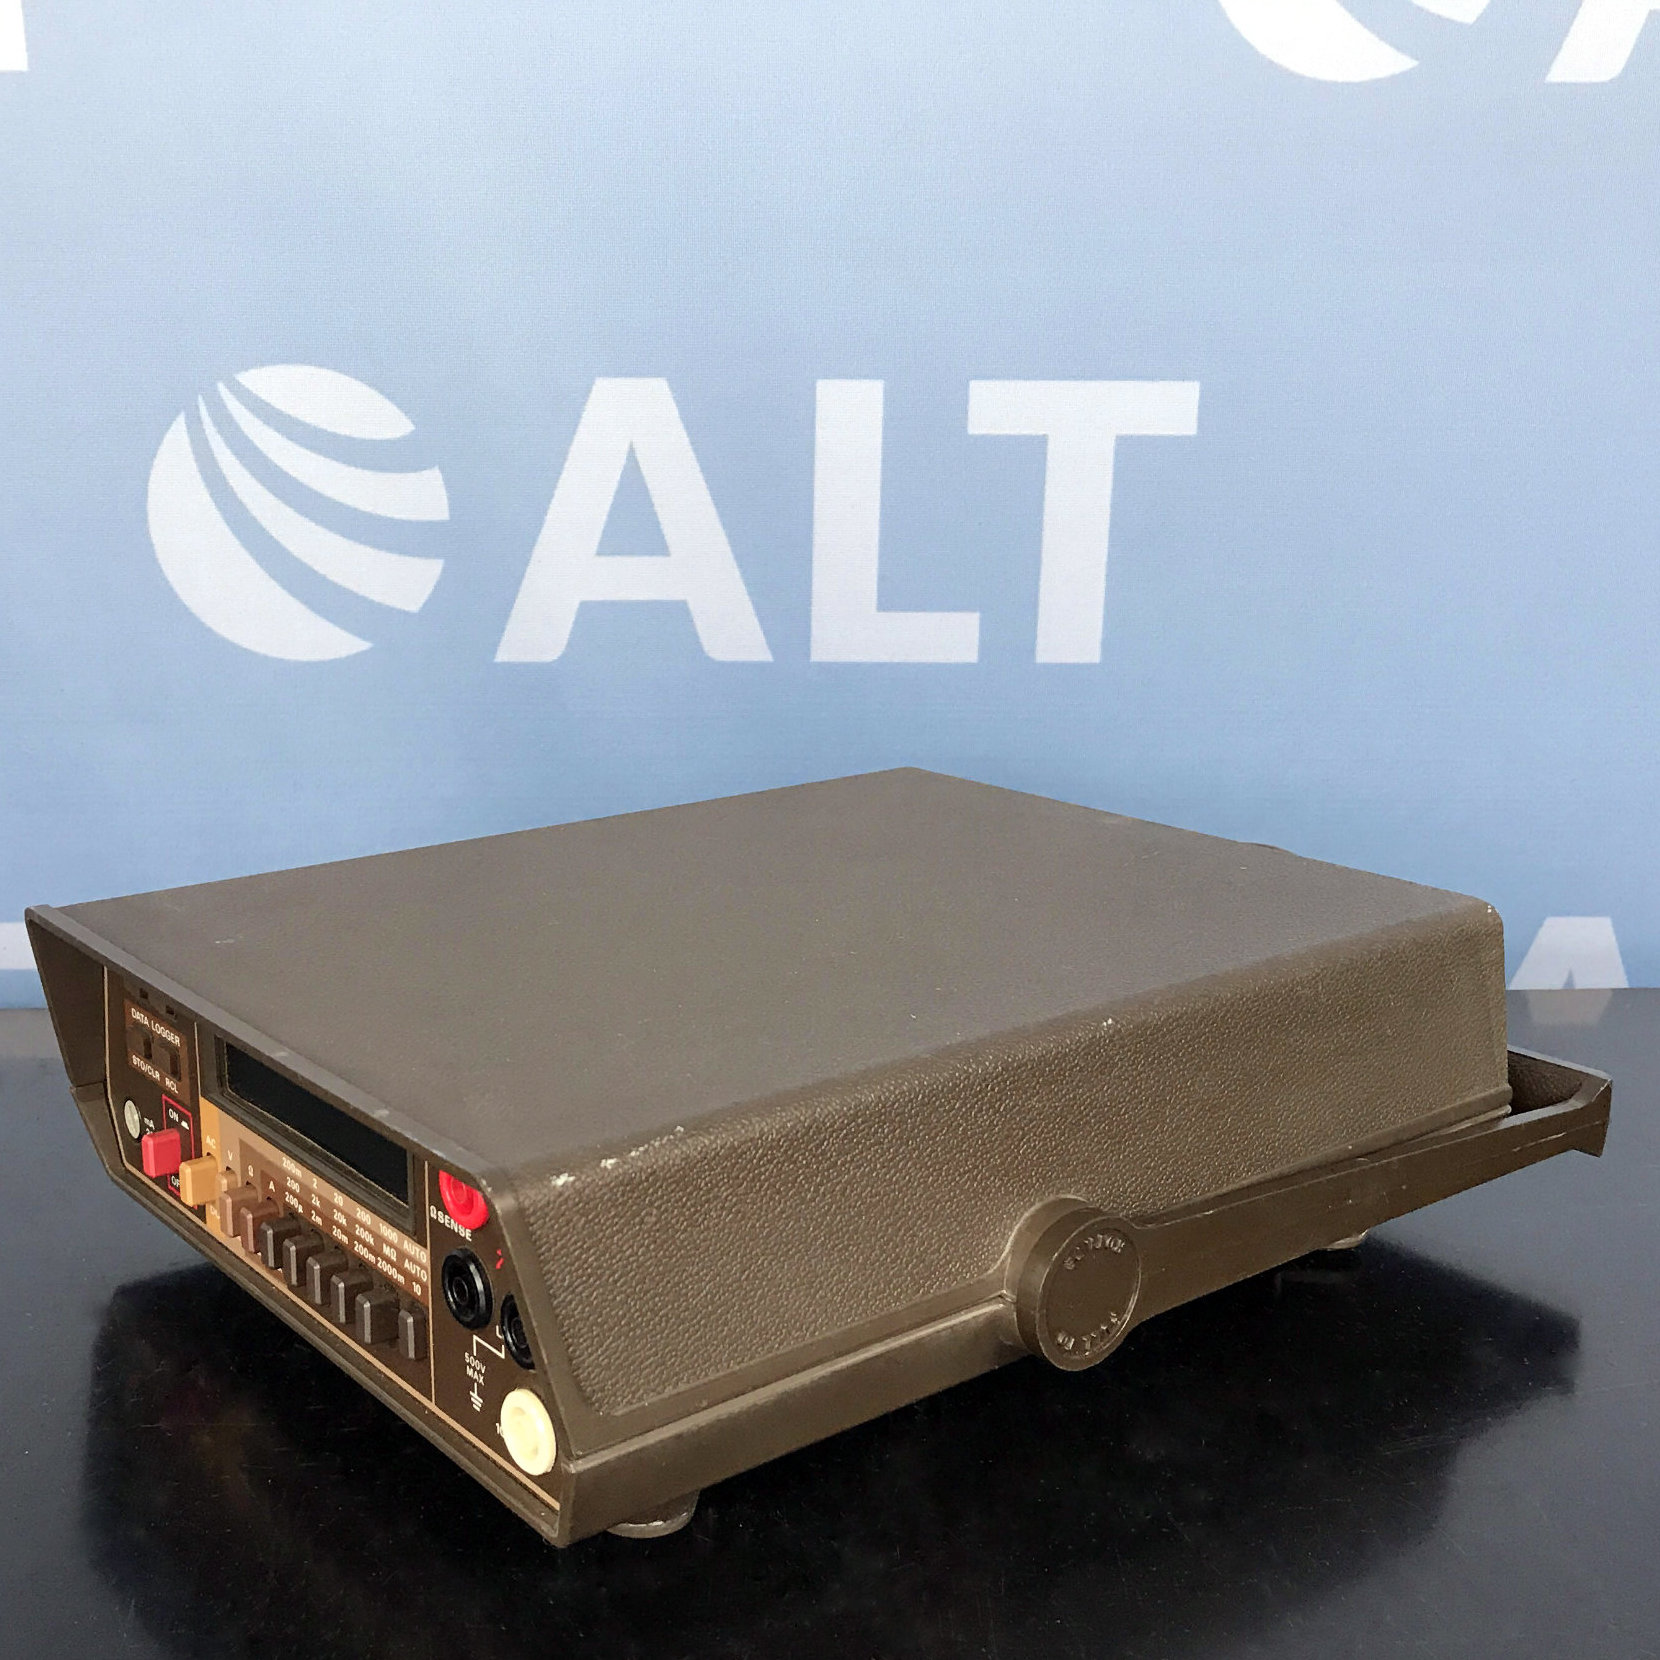 Keithley 197 Portable Autoranging Microvolt DMM Image